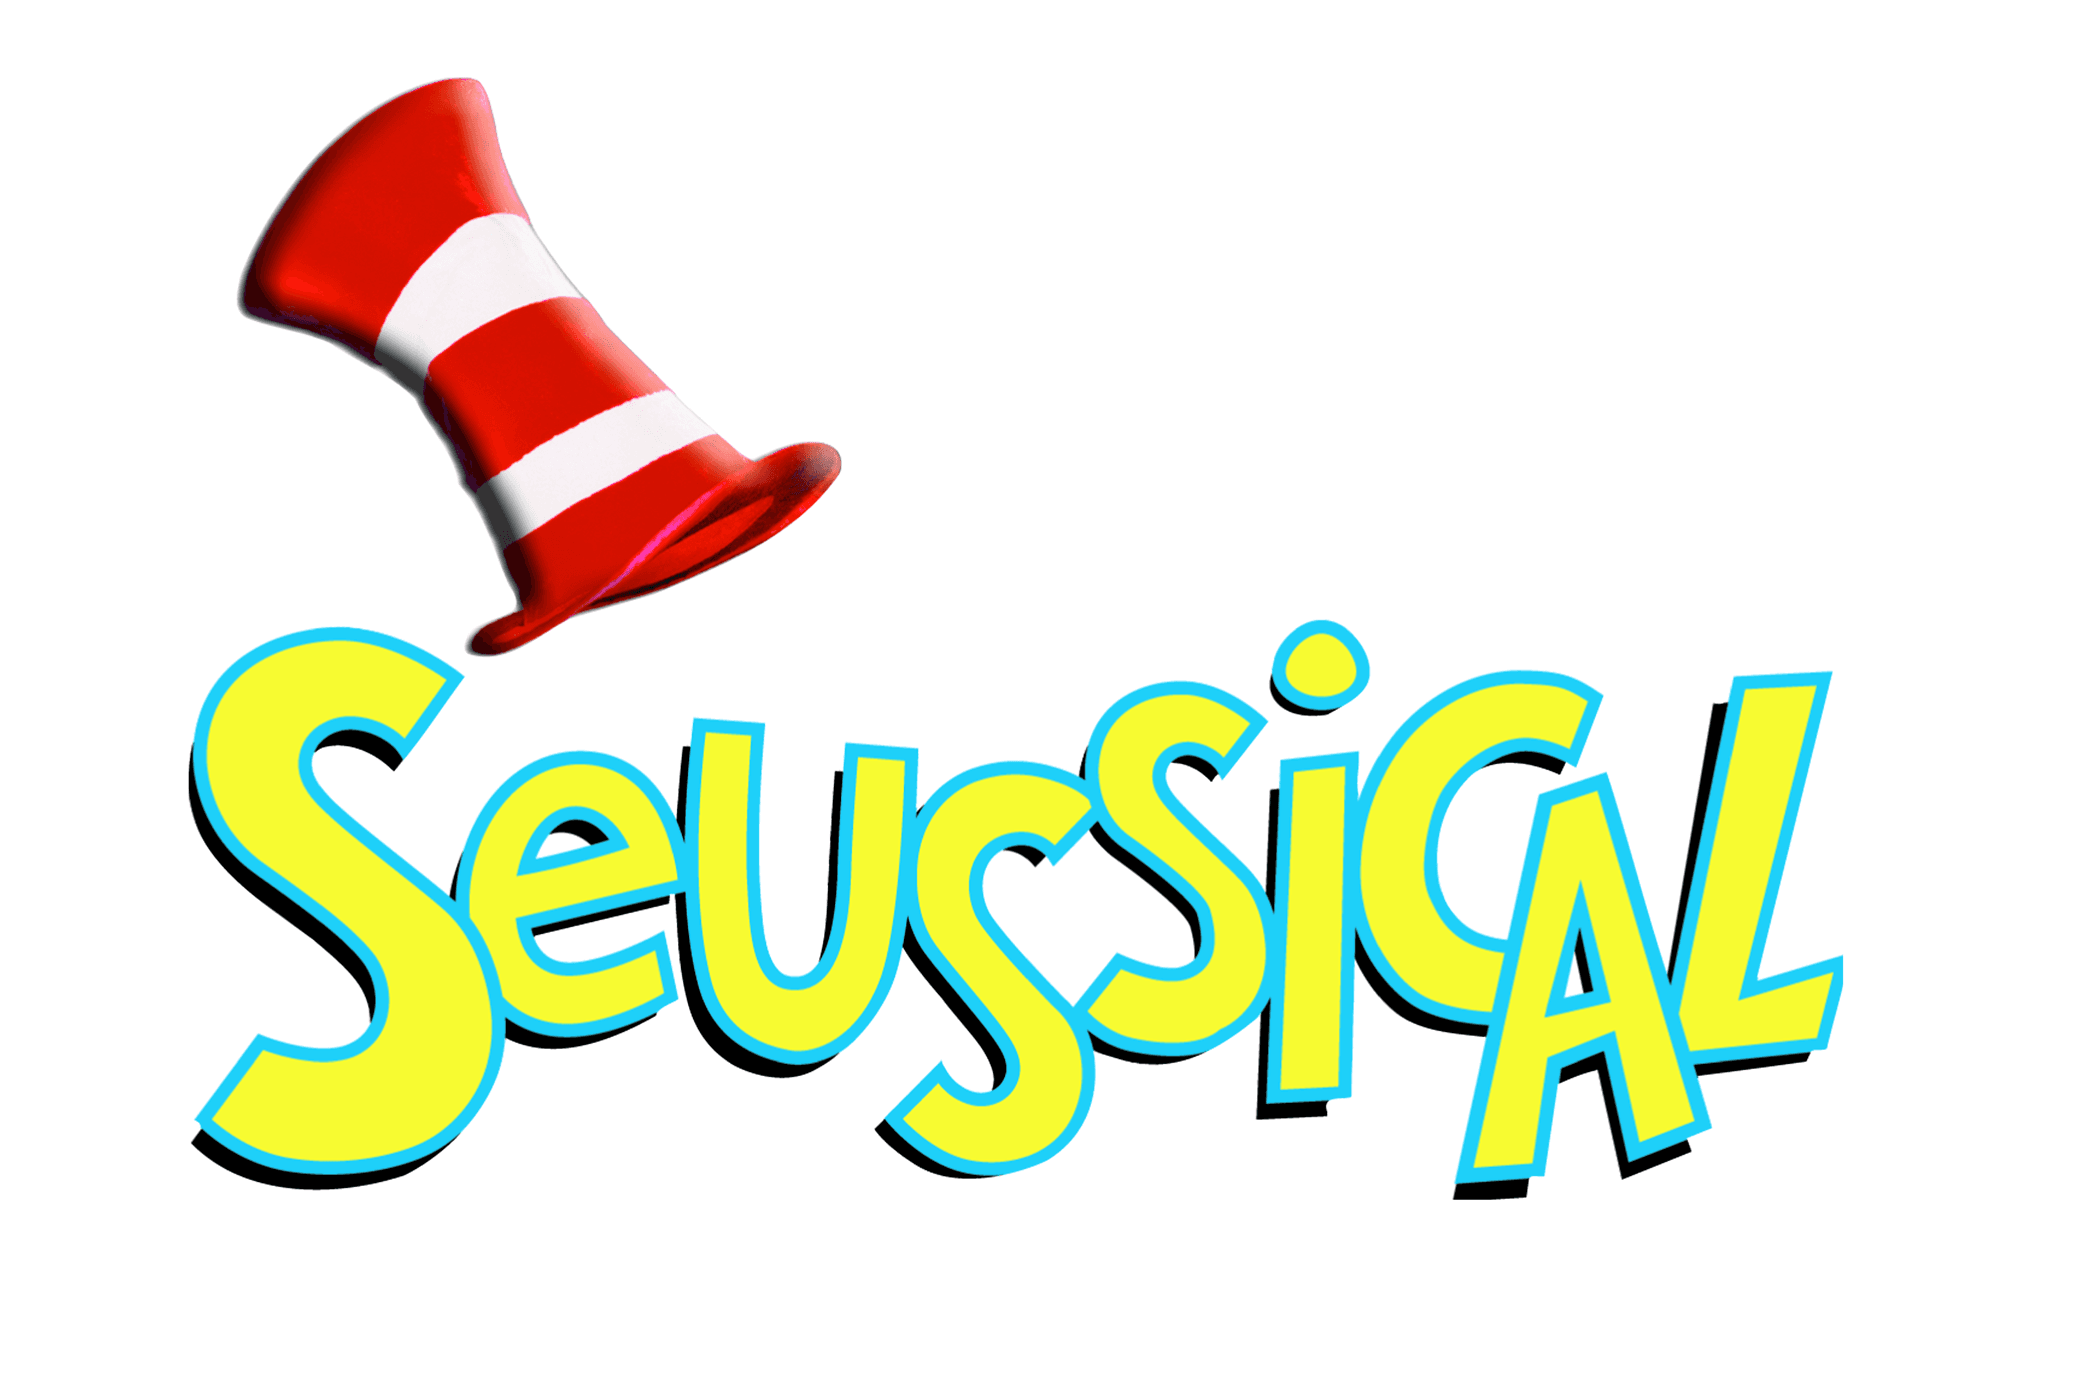 Seussical Large (1)